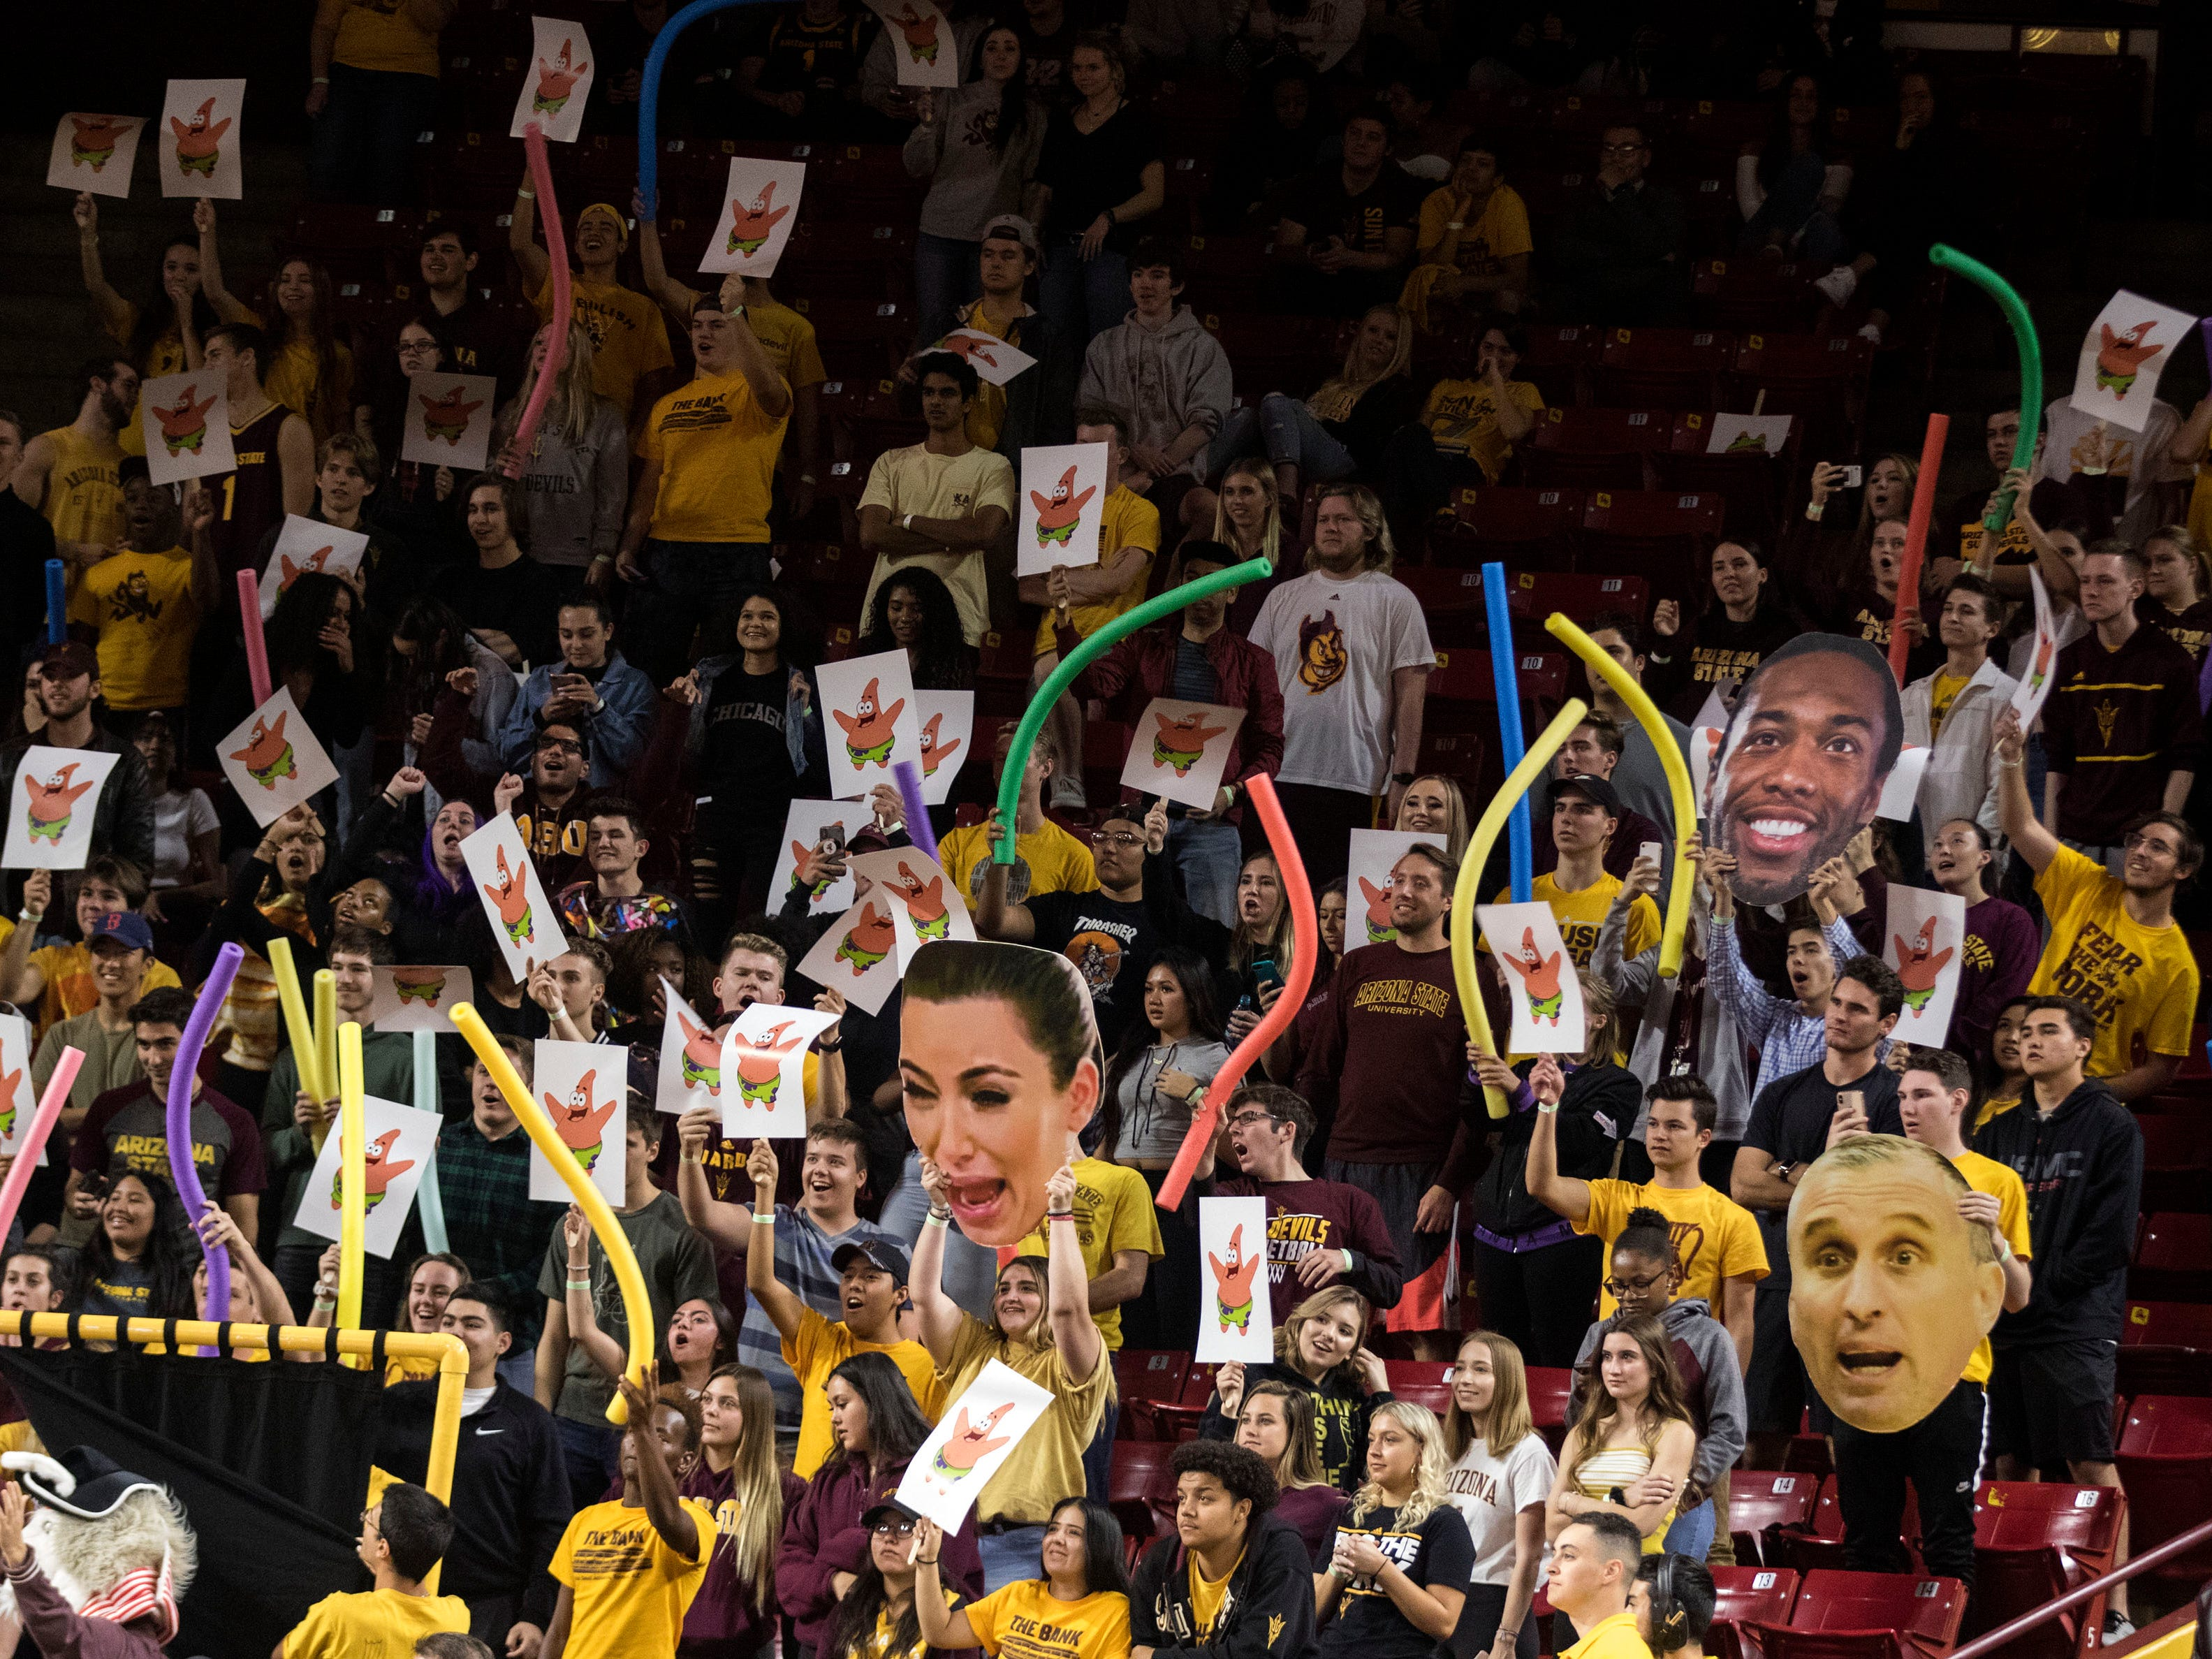 Arizona State University's student section tries to distract a Nebraska Omaha player shooting free throws during the first half of their game in Tempe, Wednesday, Nov.28,  2018. Darryl Webb/Special for the Republic